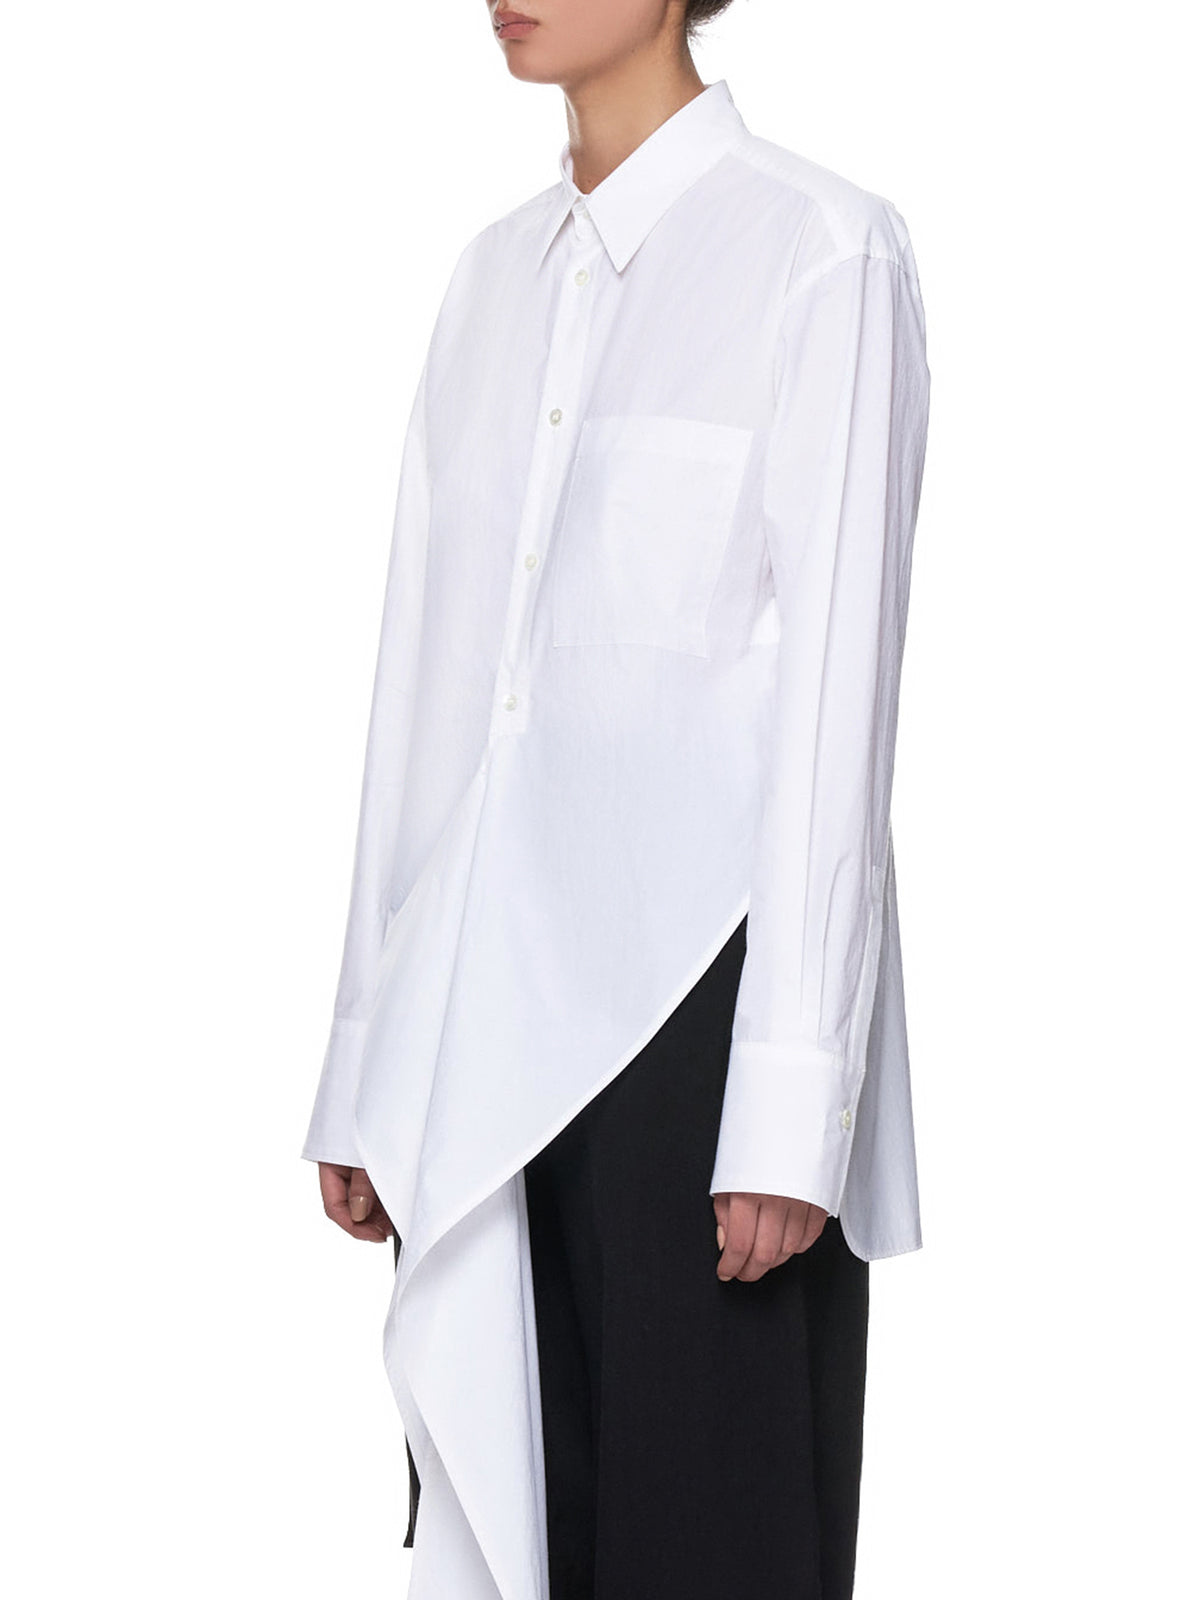 Extended Collared-Shirt (YH-B41-031-WHITE)